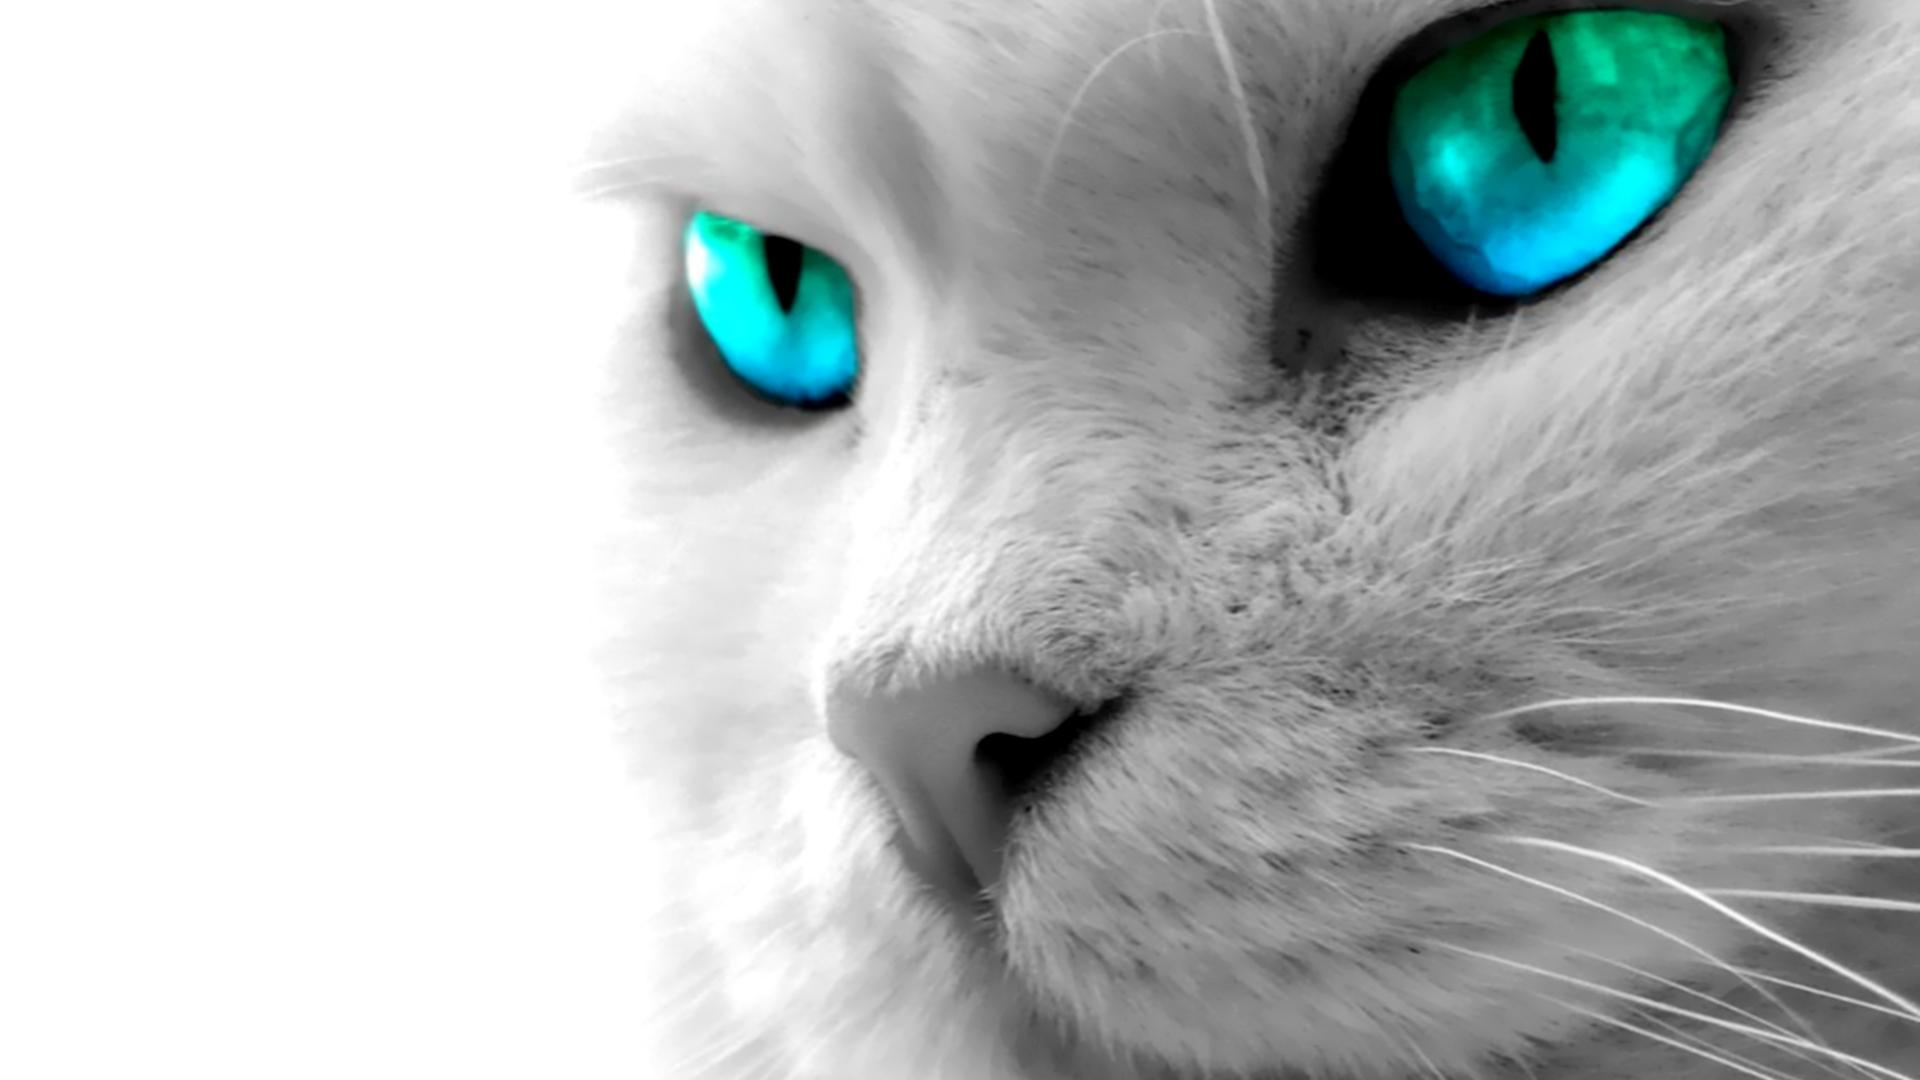 HD Cat Wallpapers 1920x1080